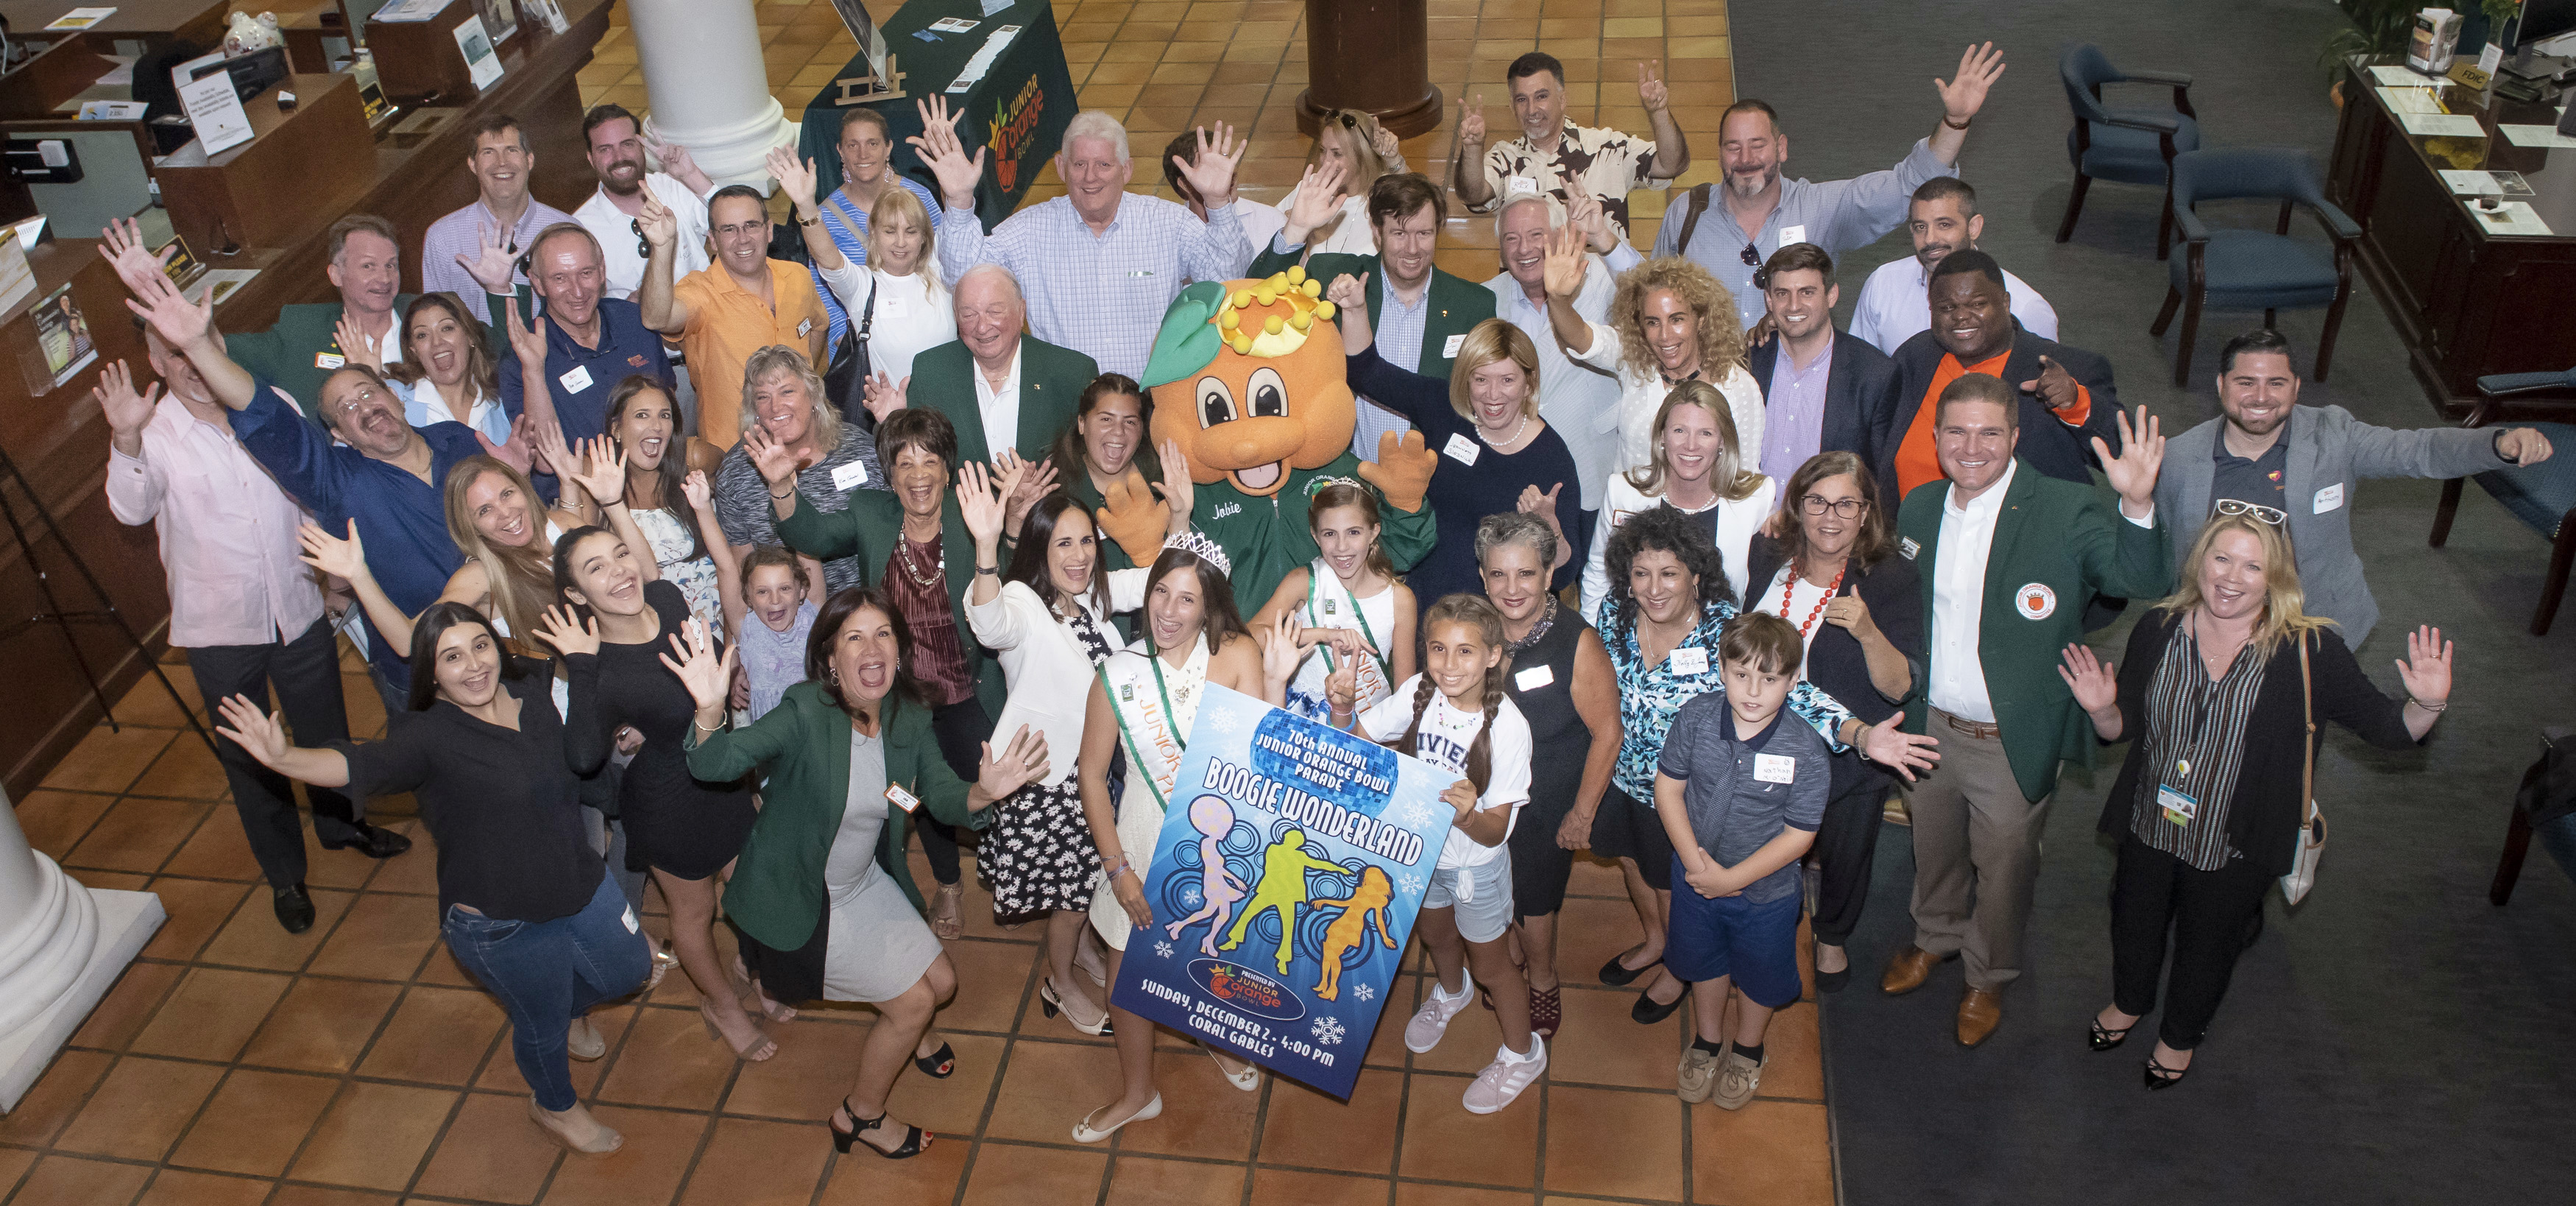 Junior Orange Bowl Unveils 70th Annual Parade Theme - Boogie Wonderland